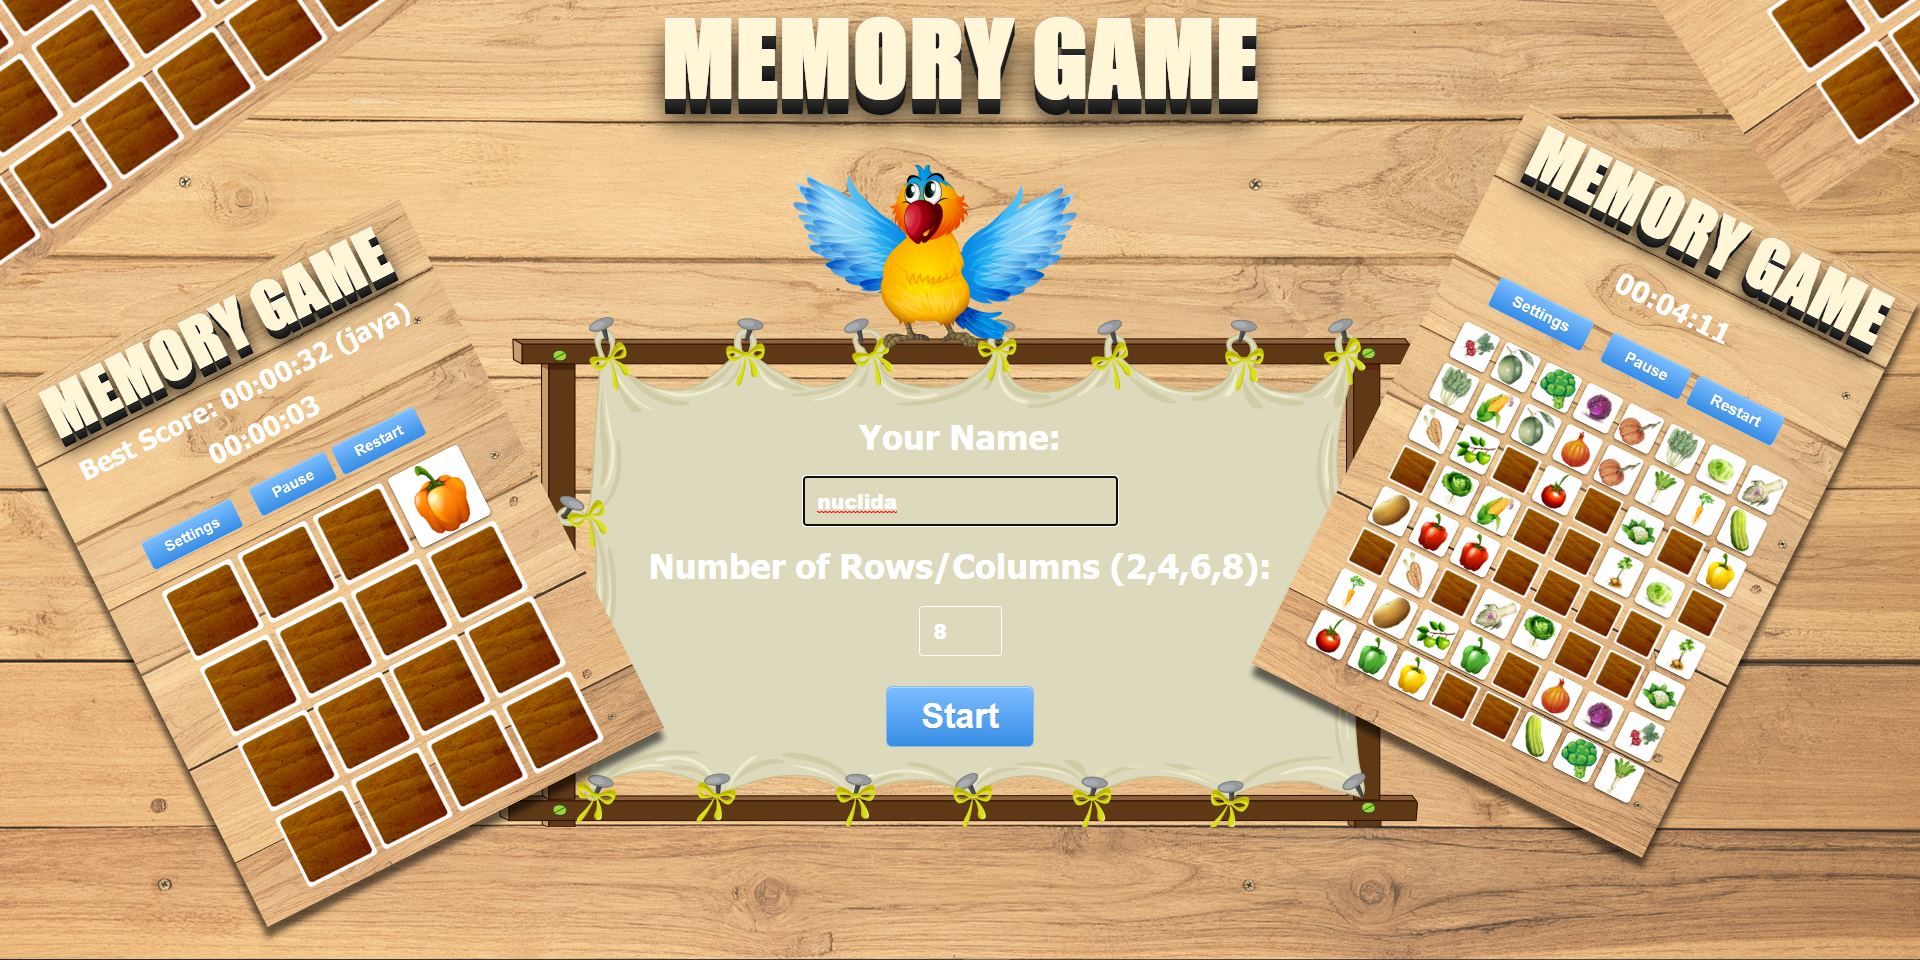 VEGETABLES GAME ANIMALS GAME BIRDS GAME Number of Rows/Columns (2,4,6,8) Source Code Available